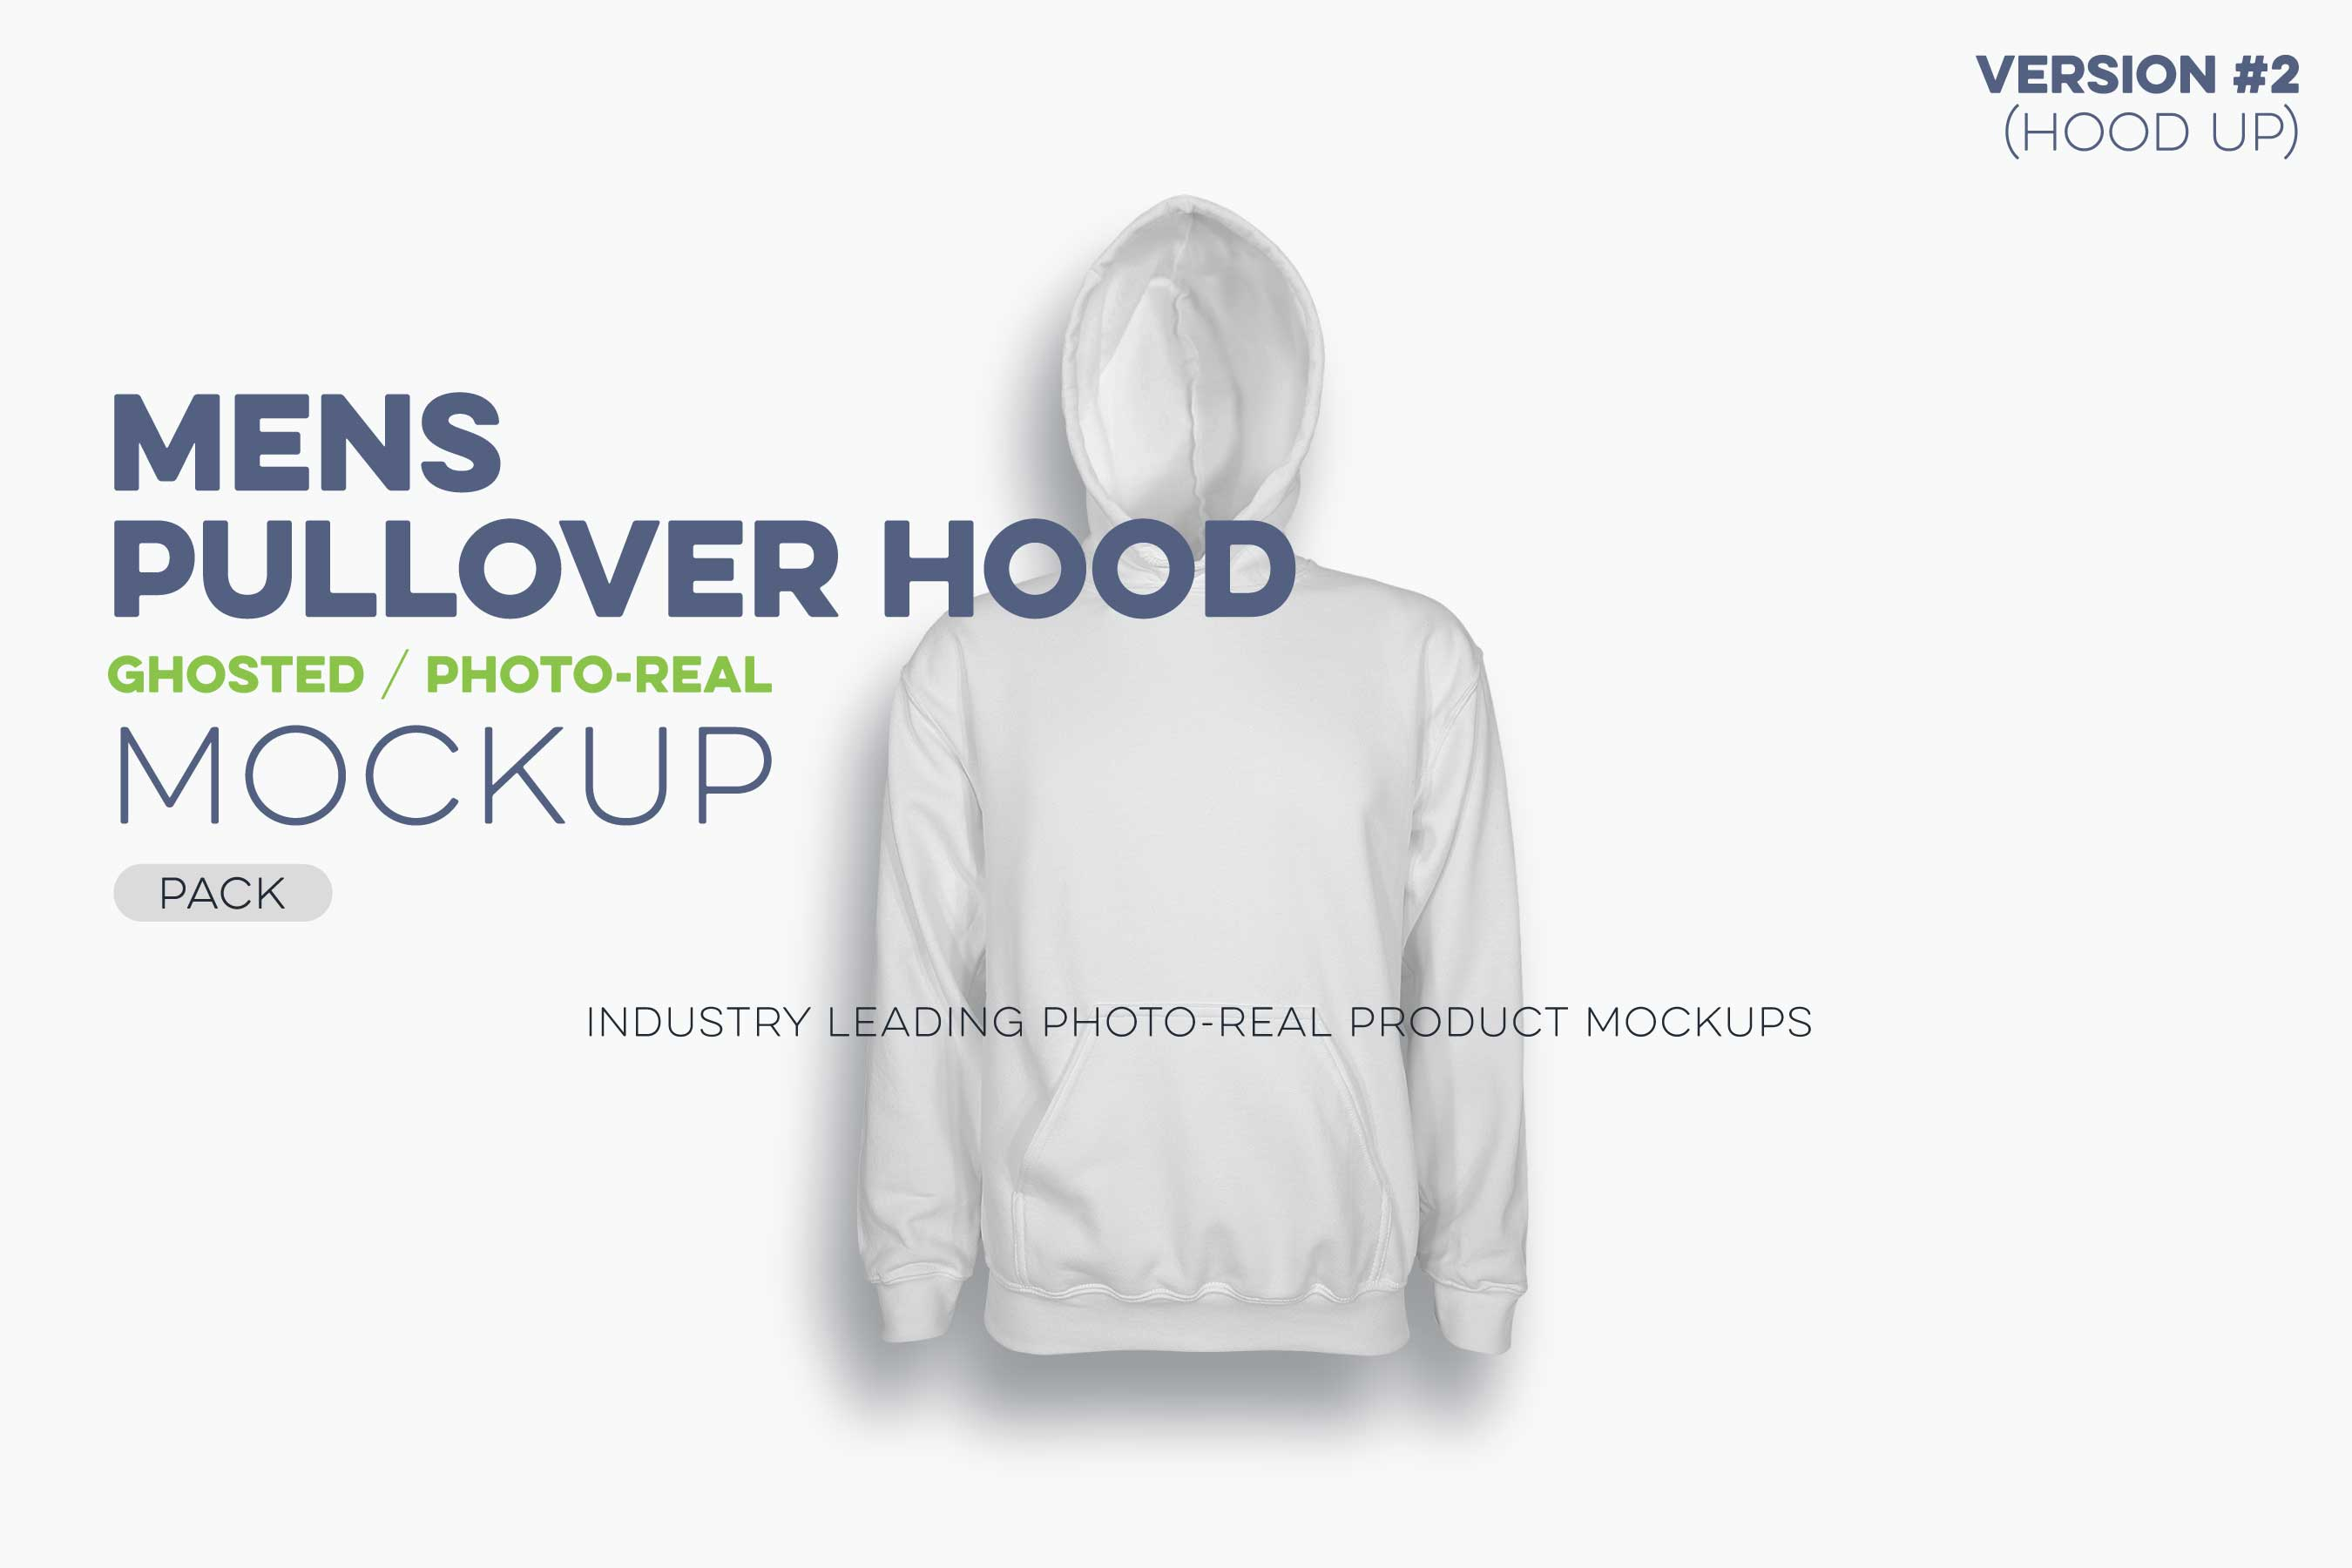 mens ghosted pullover hoodie mockup template UP N